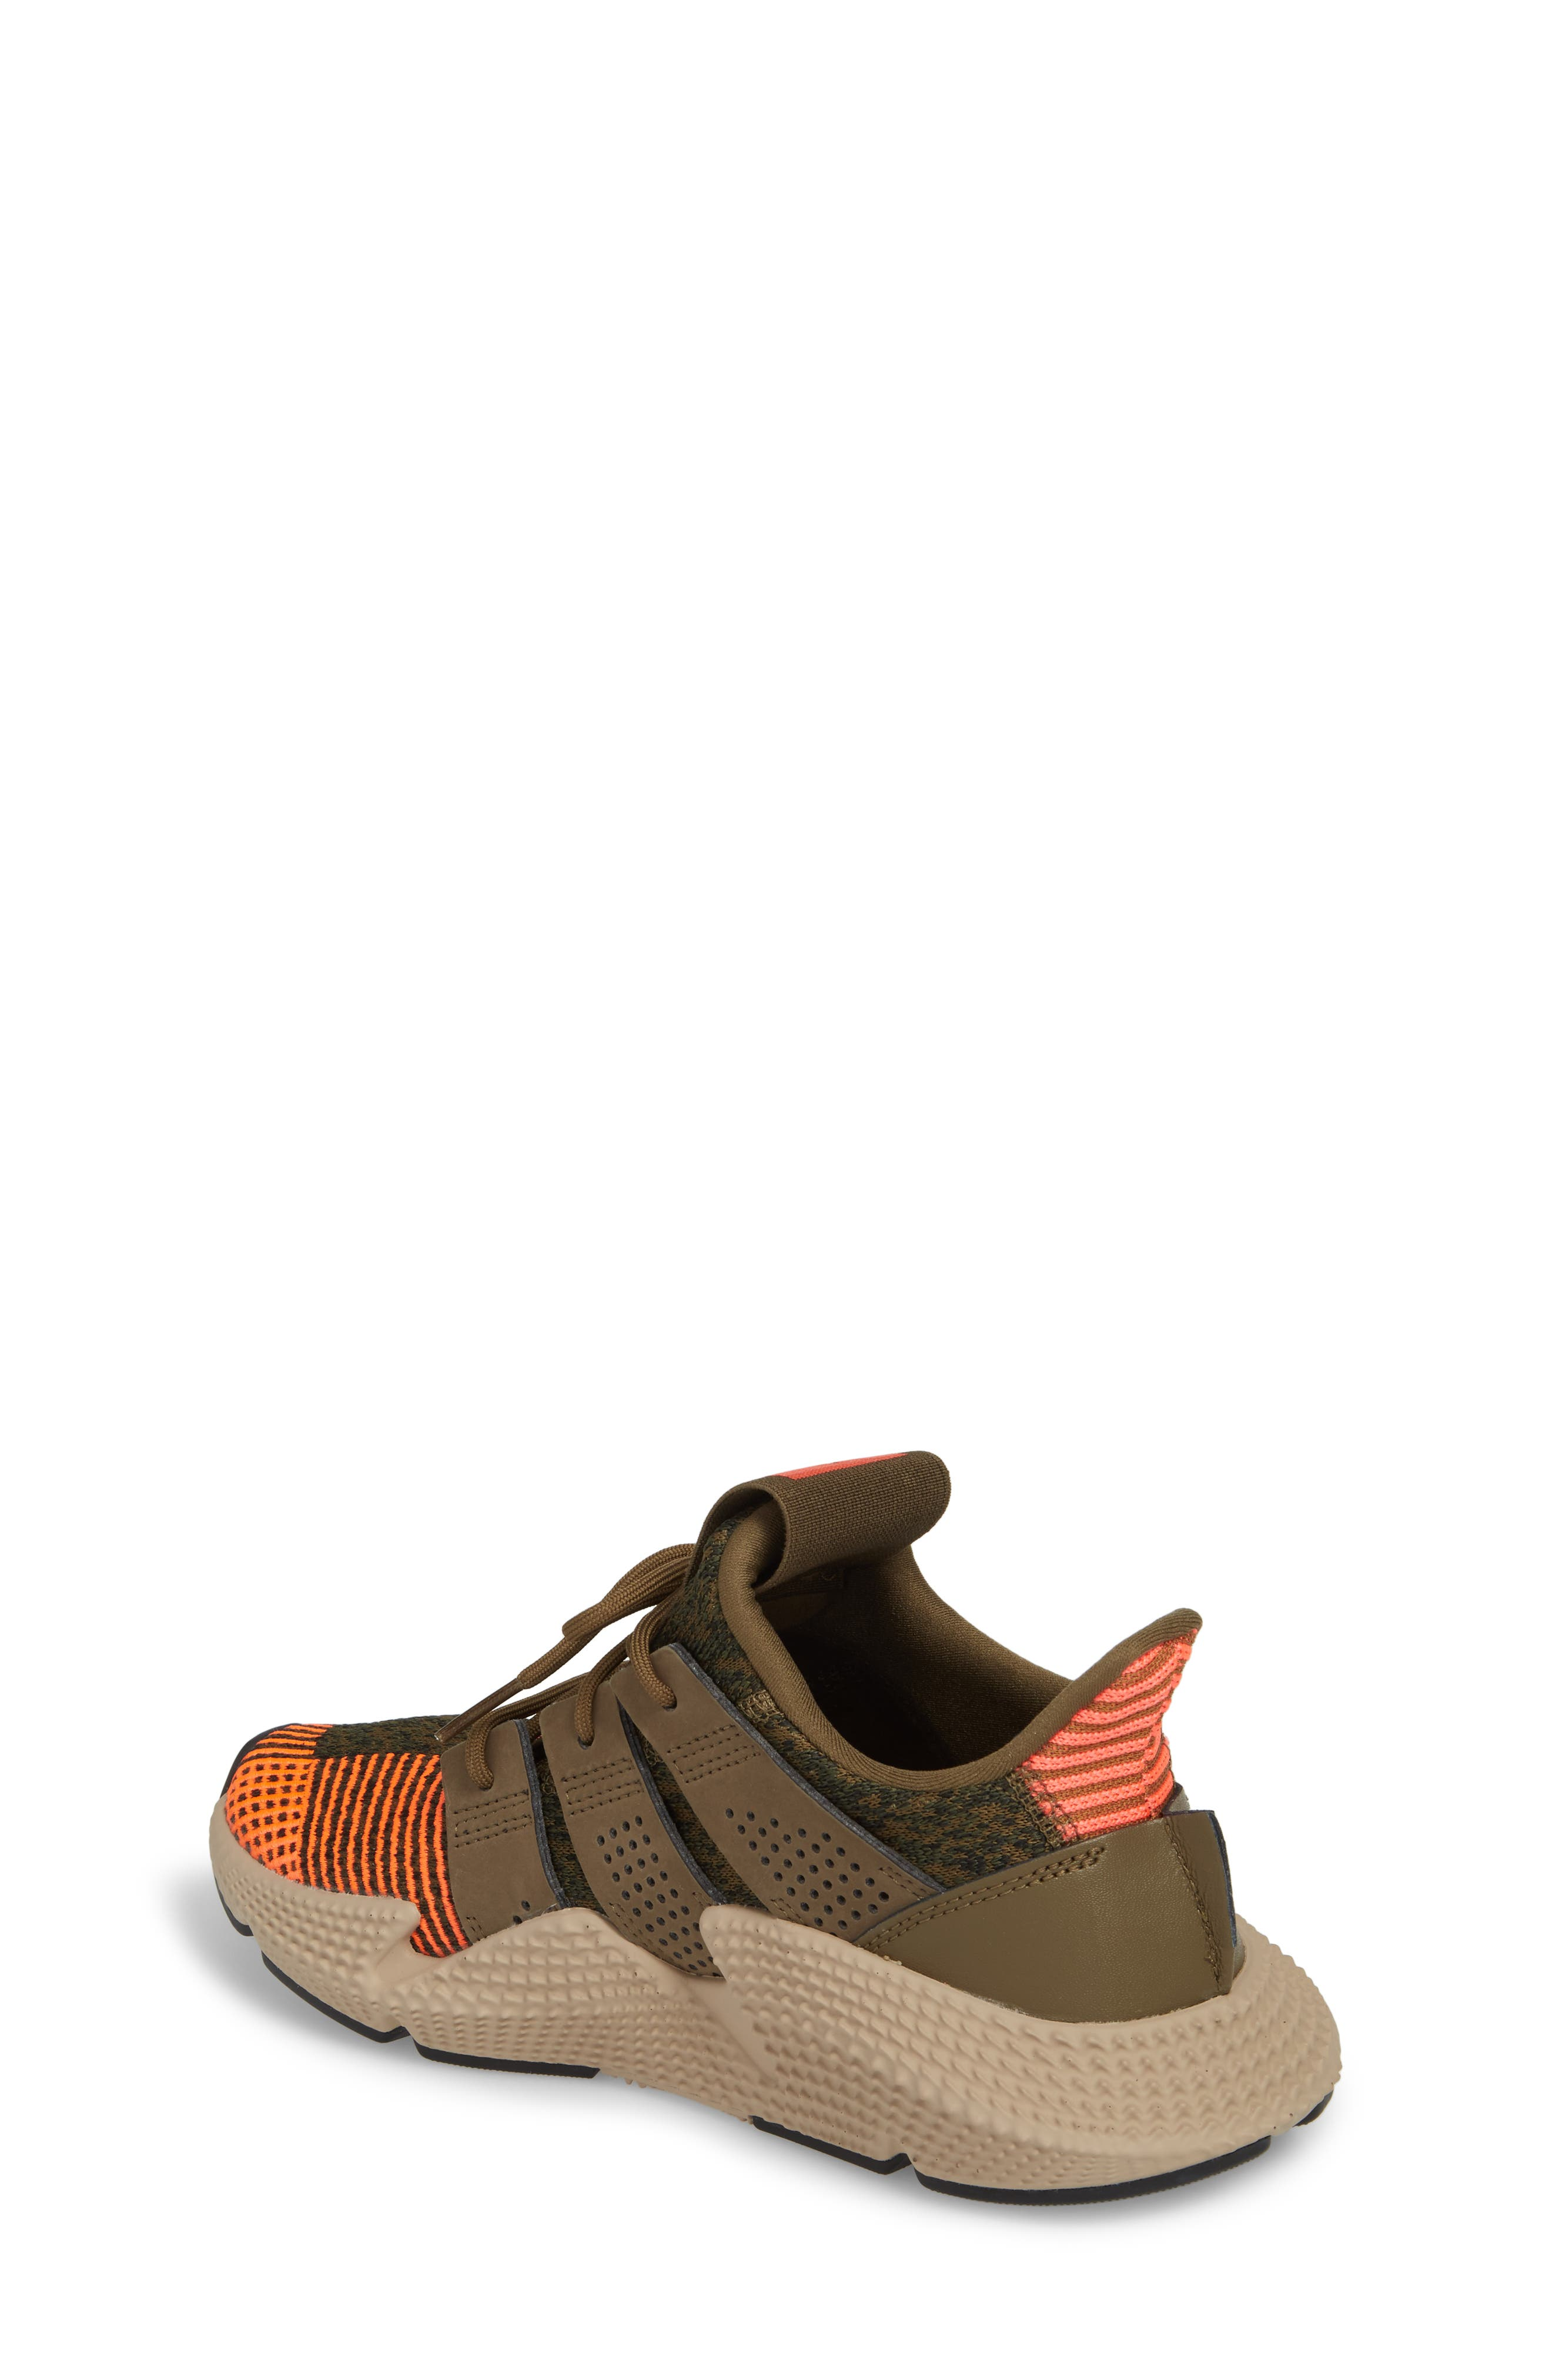 Prophere Sneaker,                             Alternate thumbnail 2, color,                             Trace Olive / Trace Khaki